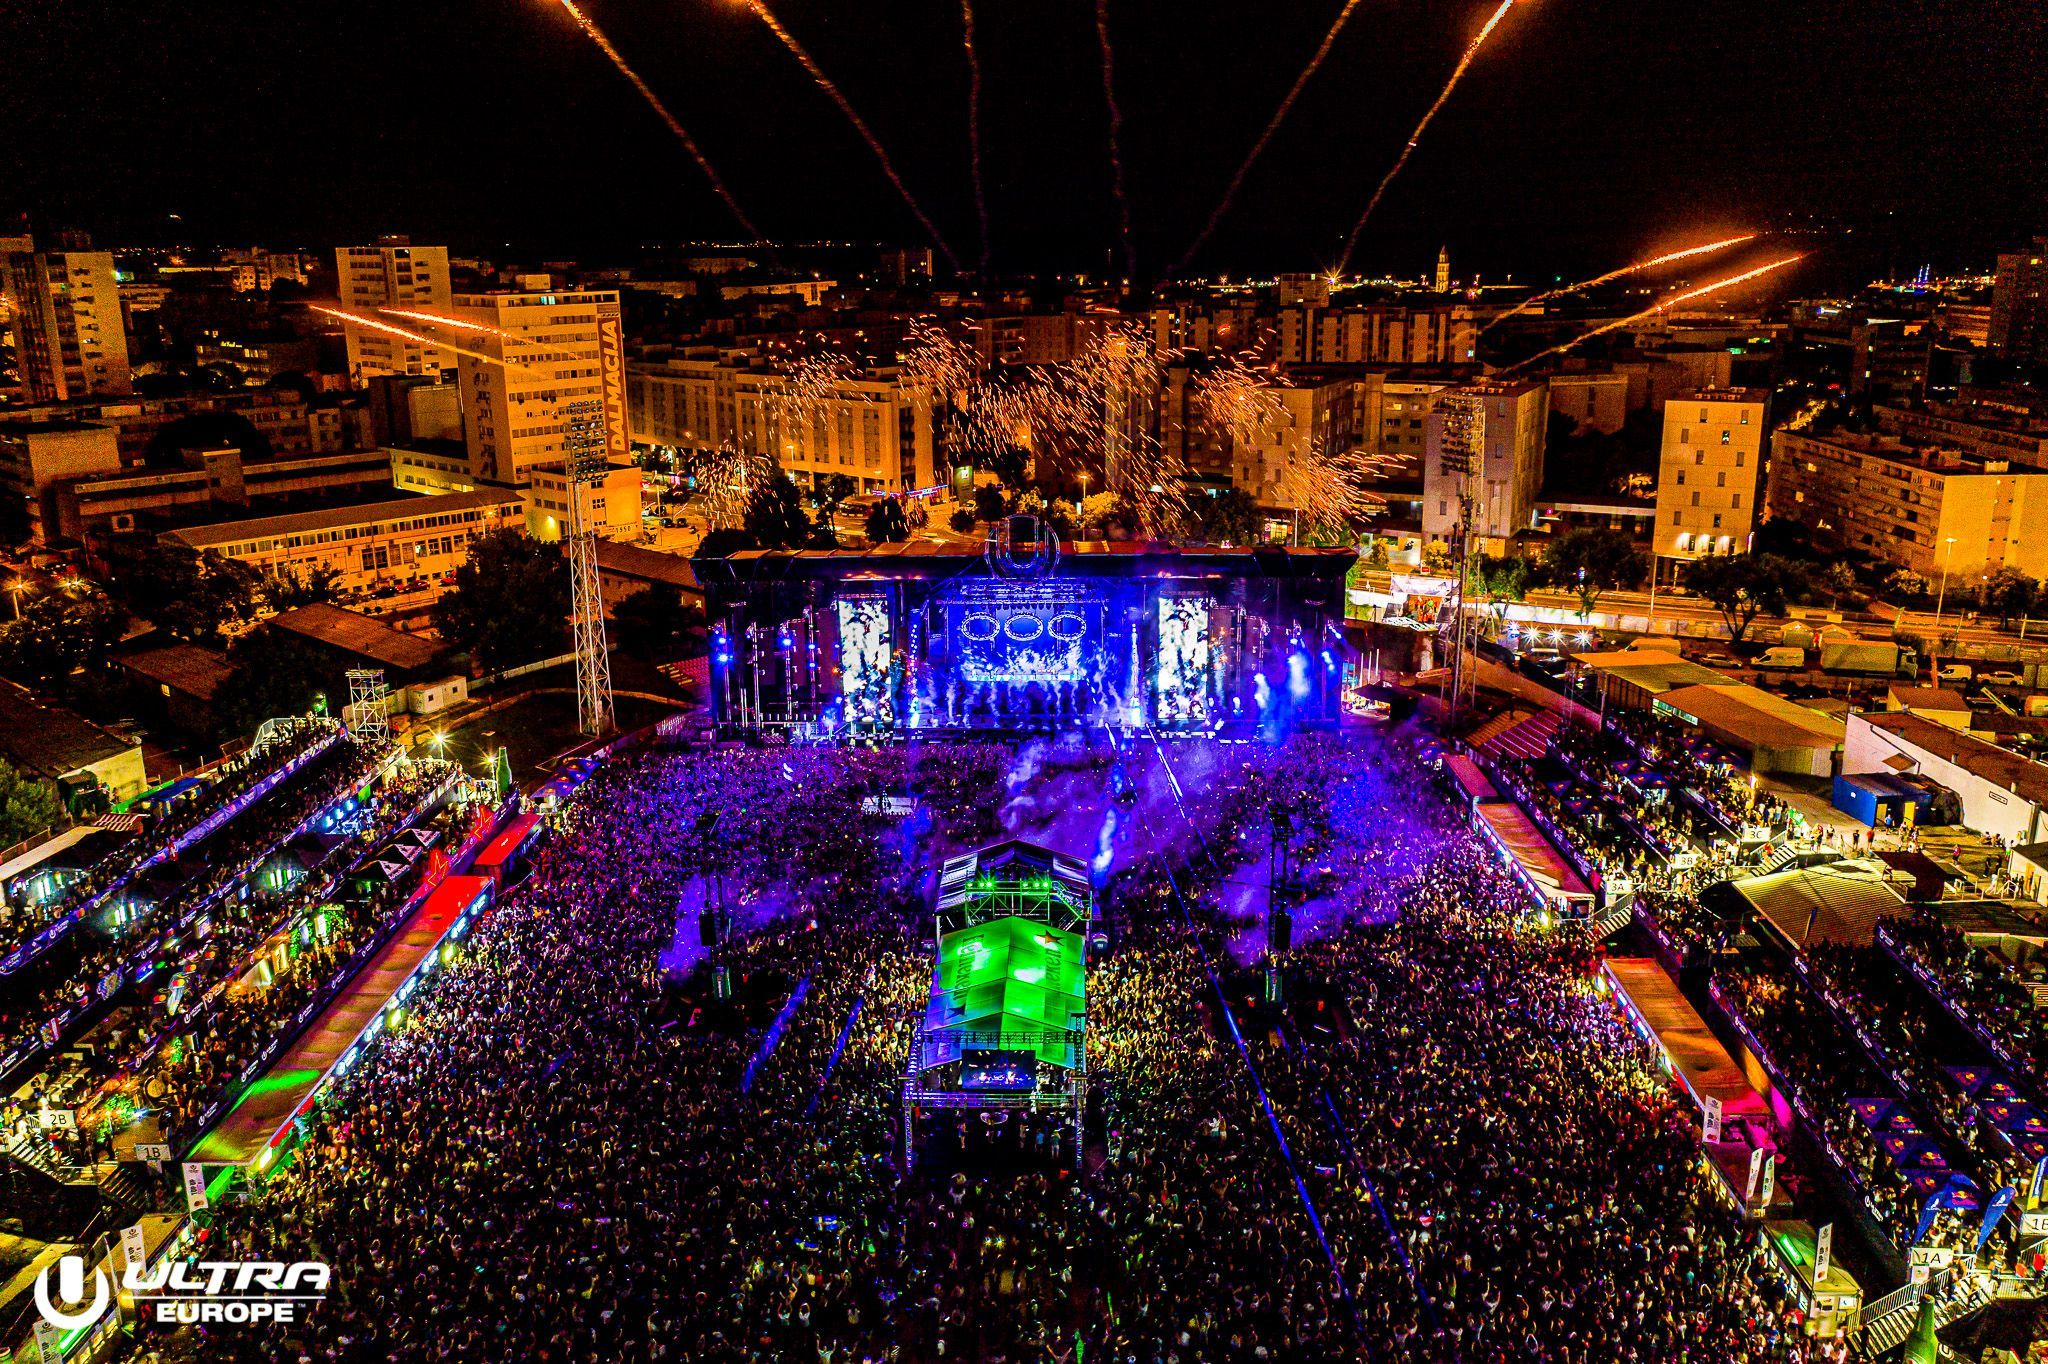 swedish-house-mafia-carl-cox-i-cheat-codes-zatvorili-ultra-europe-festival